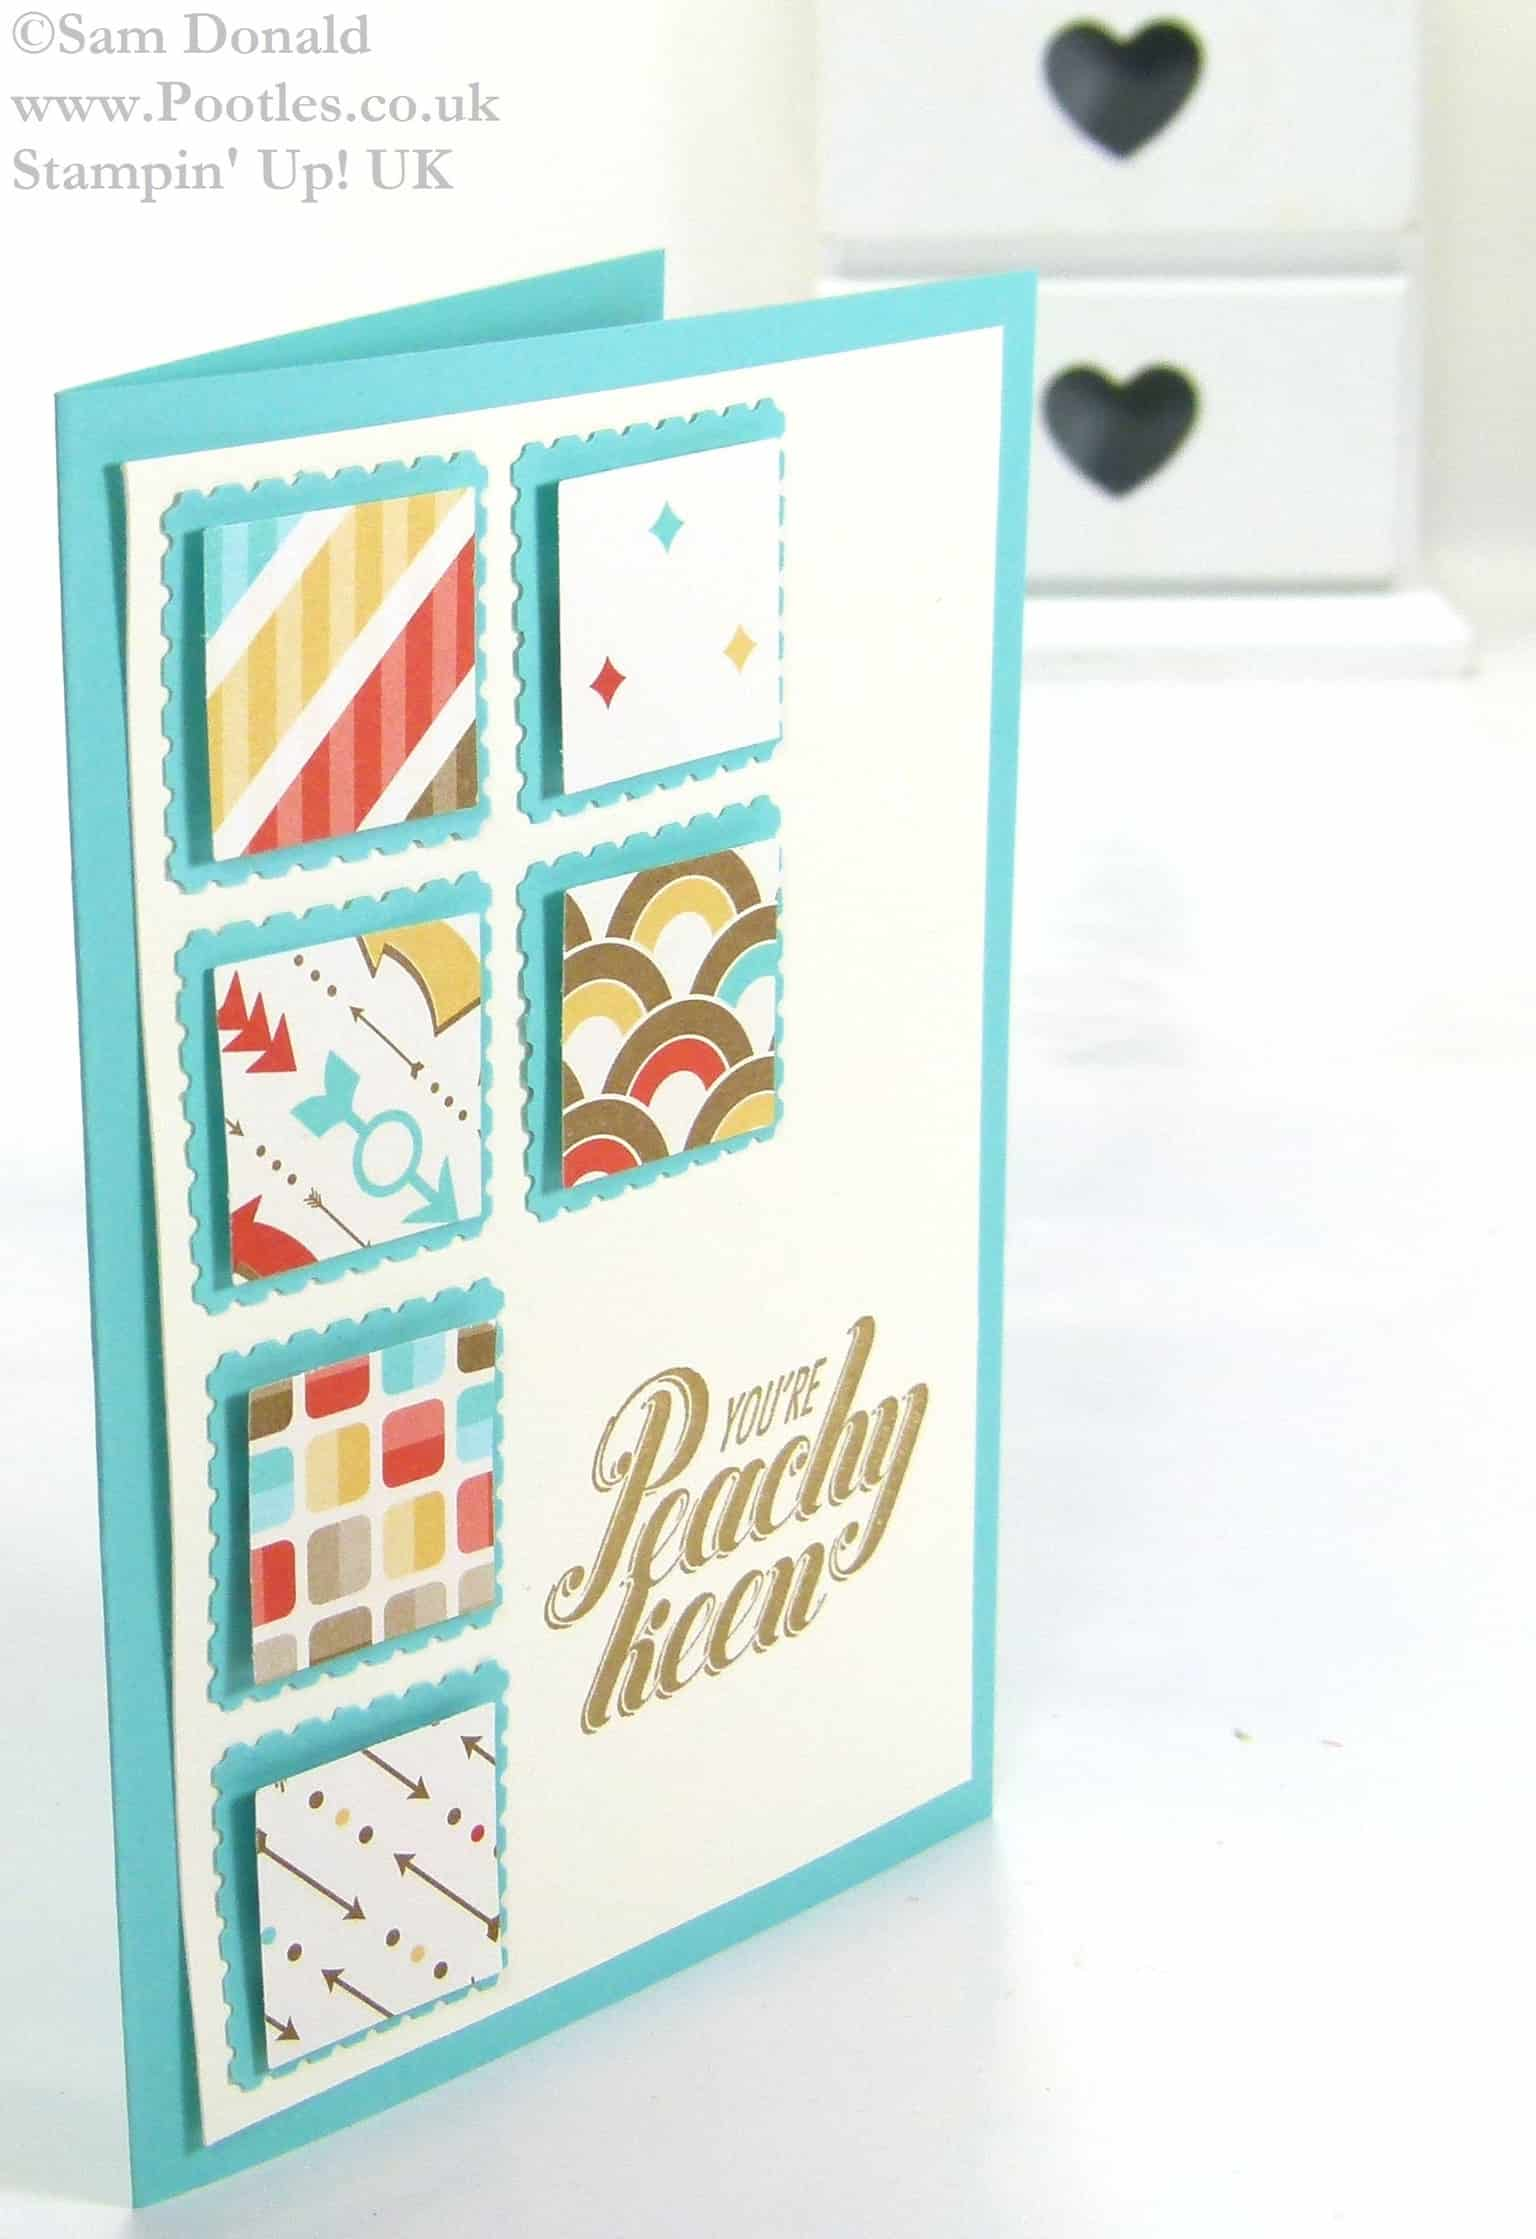 POOTLES Stampin' Up! UK Peachy Keen Retro Fresh Showcase 2